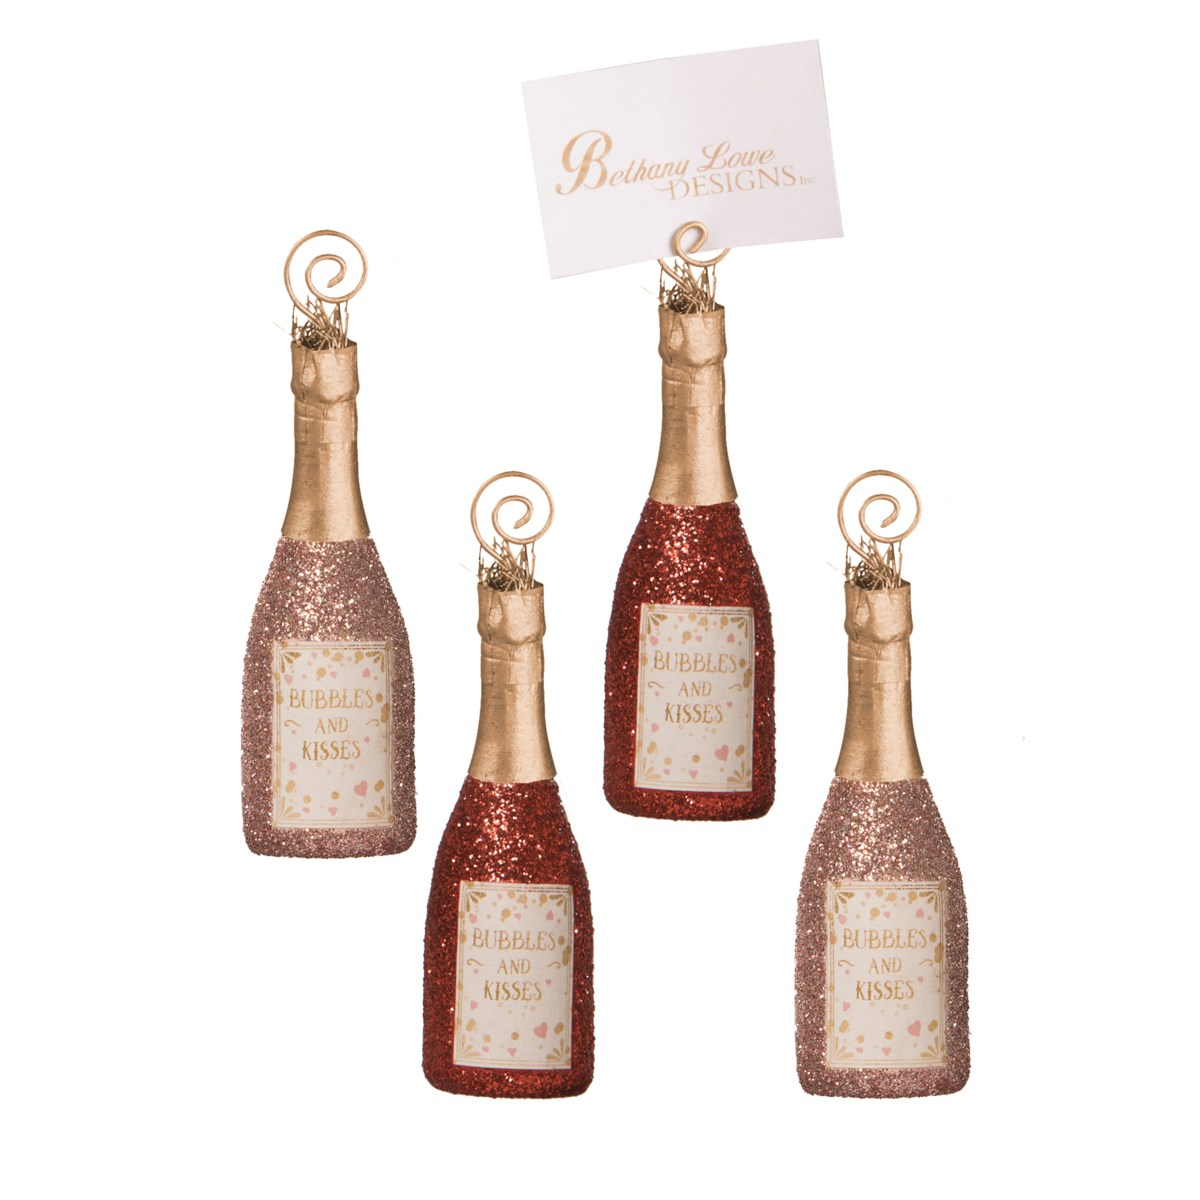 Bubbles and Kisses Champagne OrnamentPlace Card Holder S4